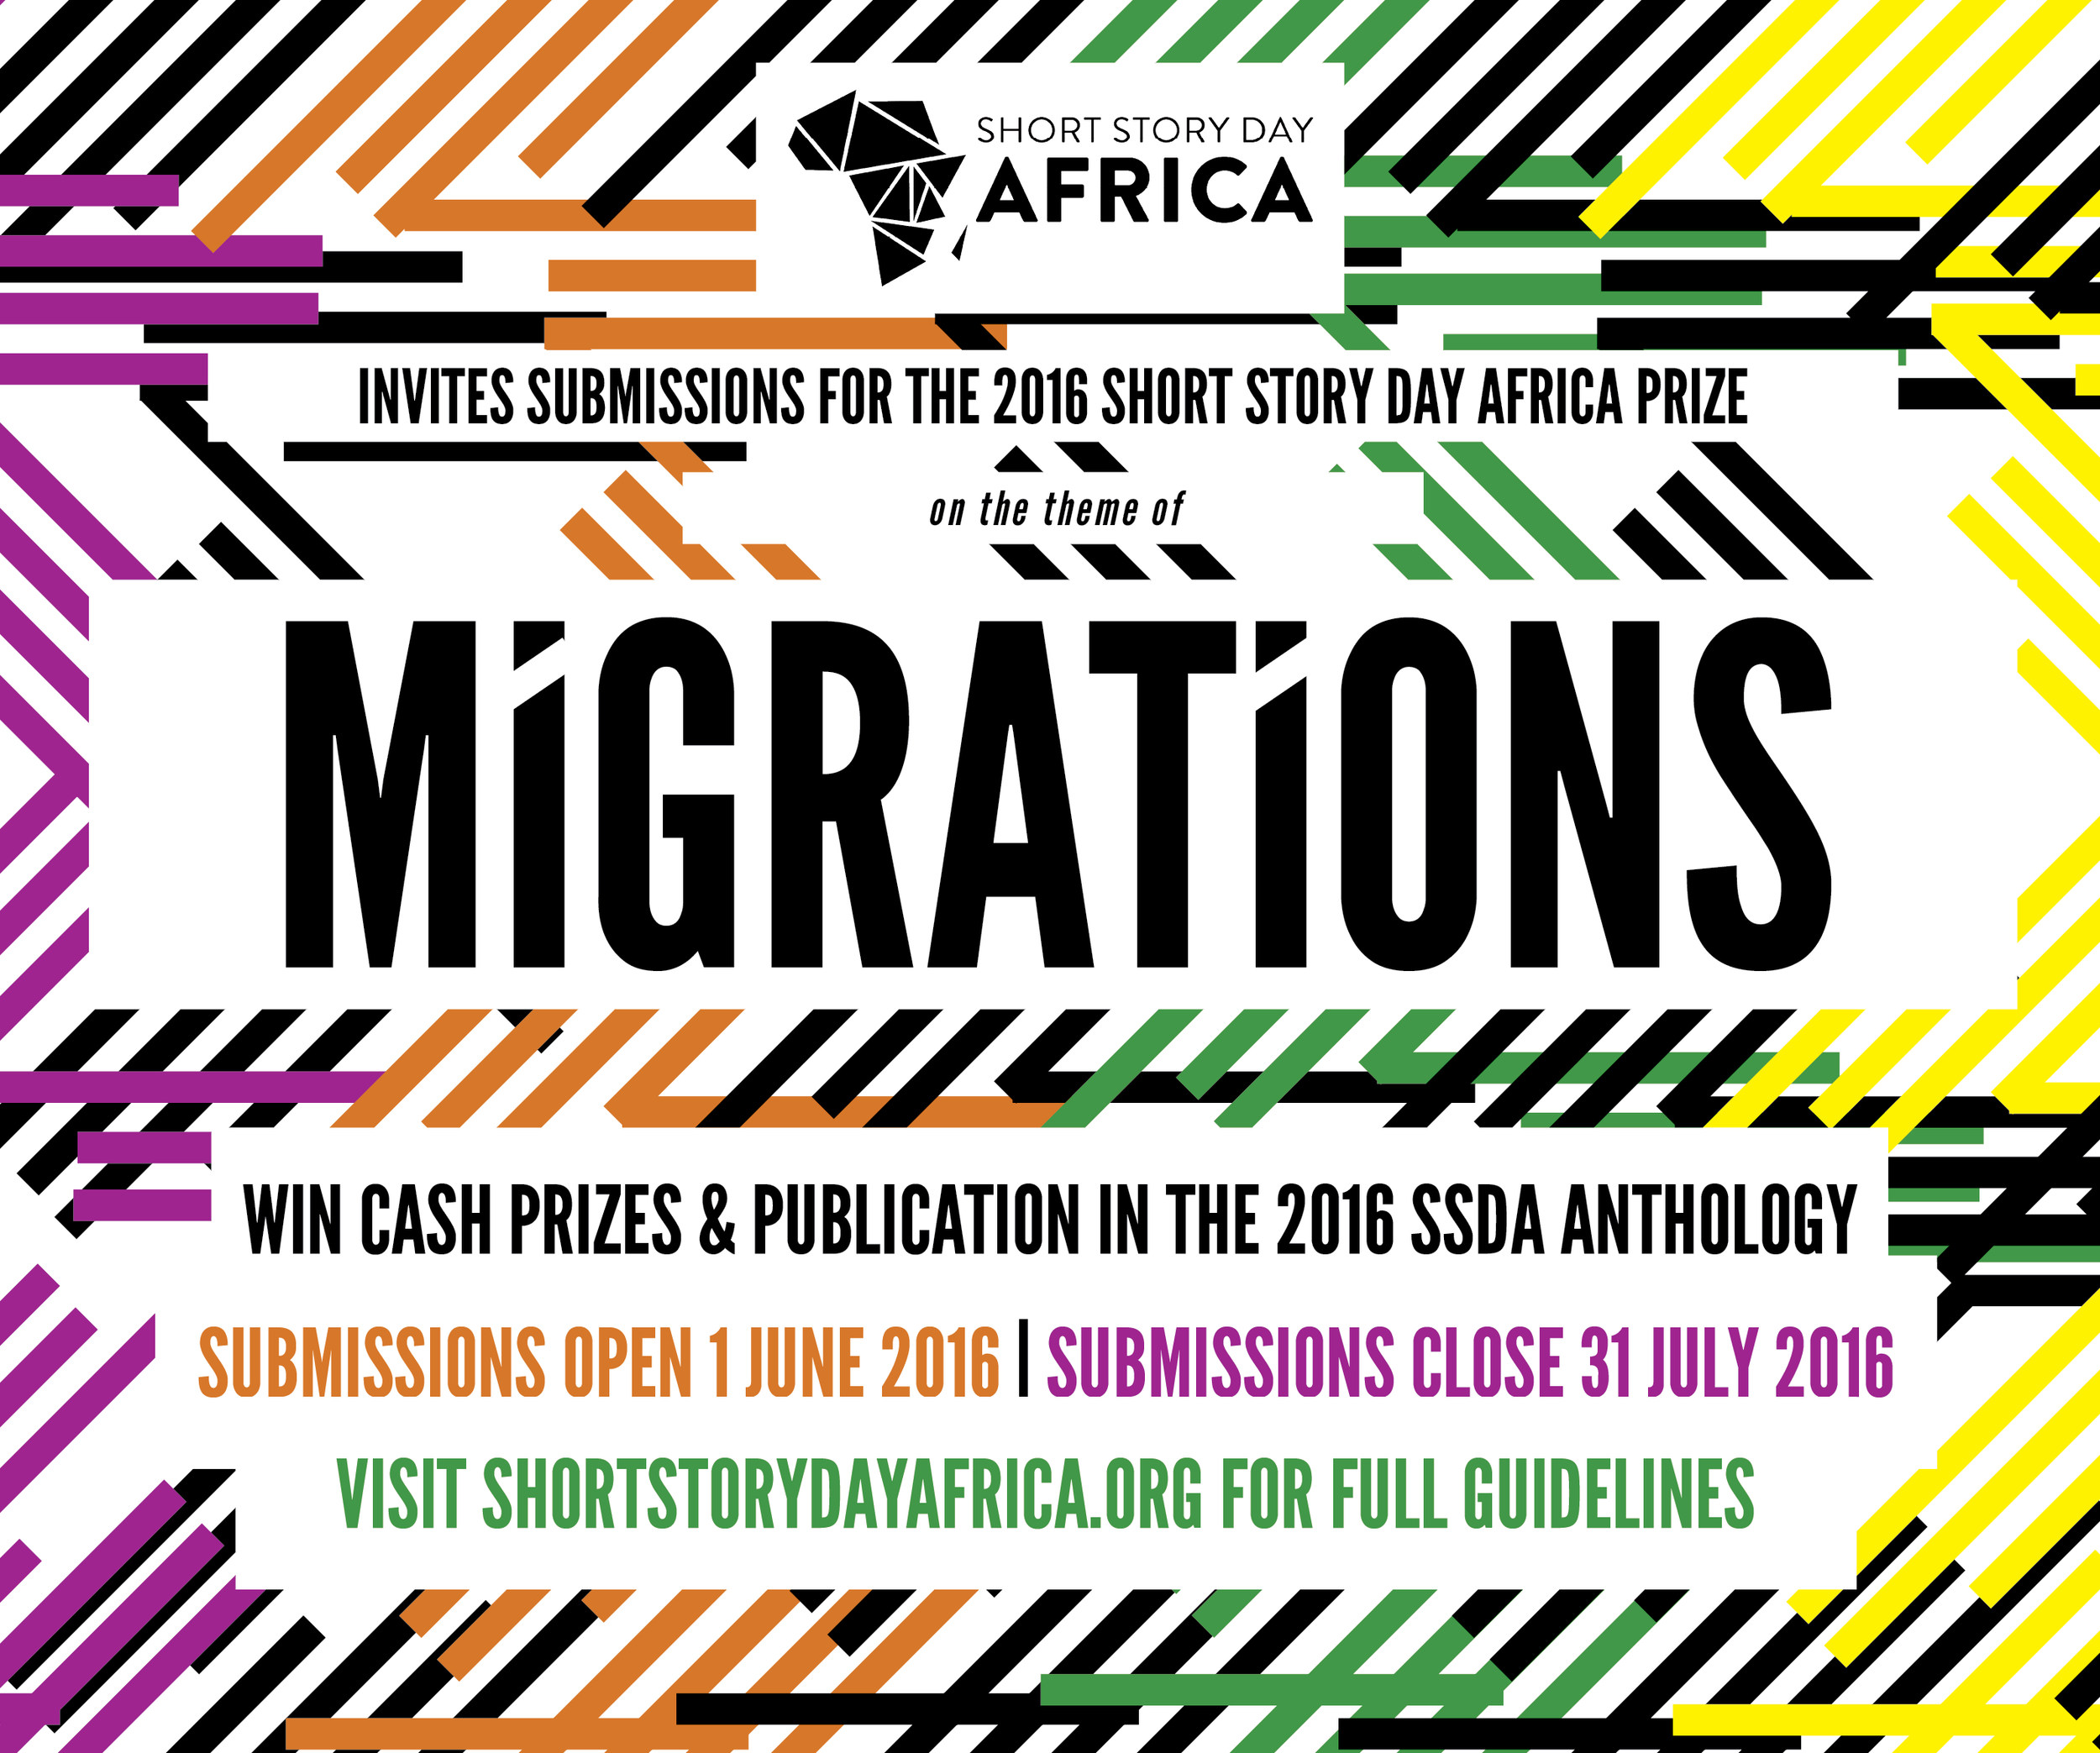 ssda-prize-submissions-image_20150208.png